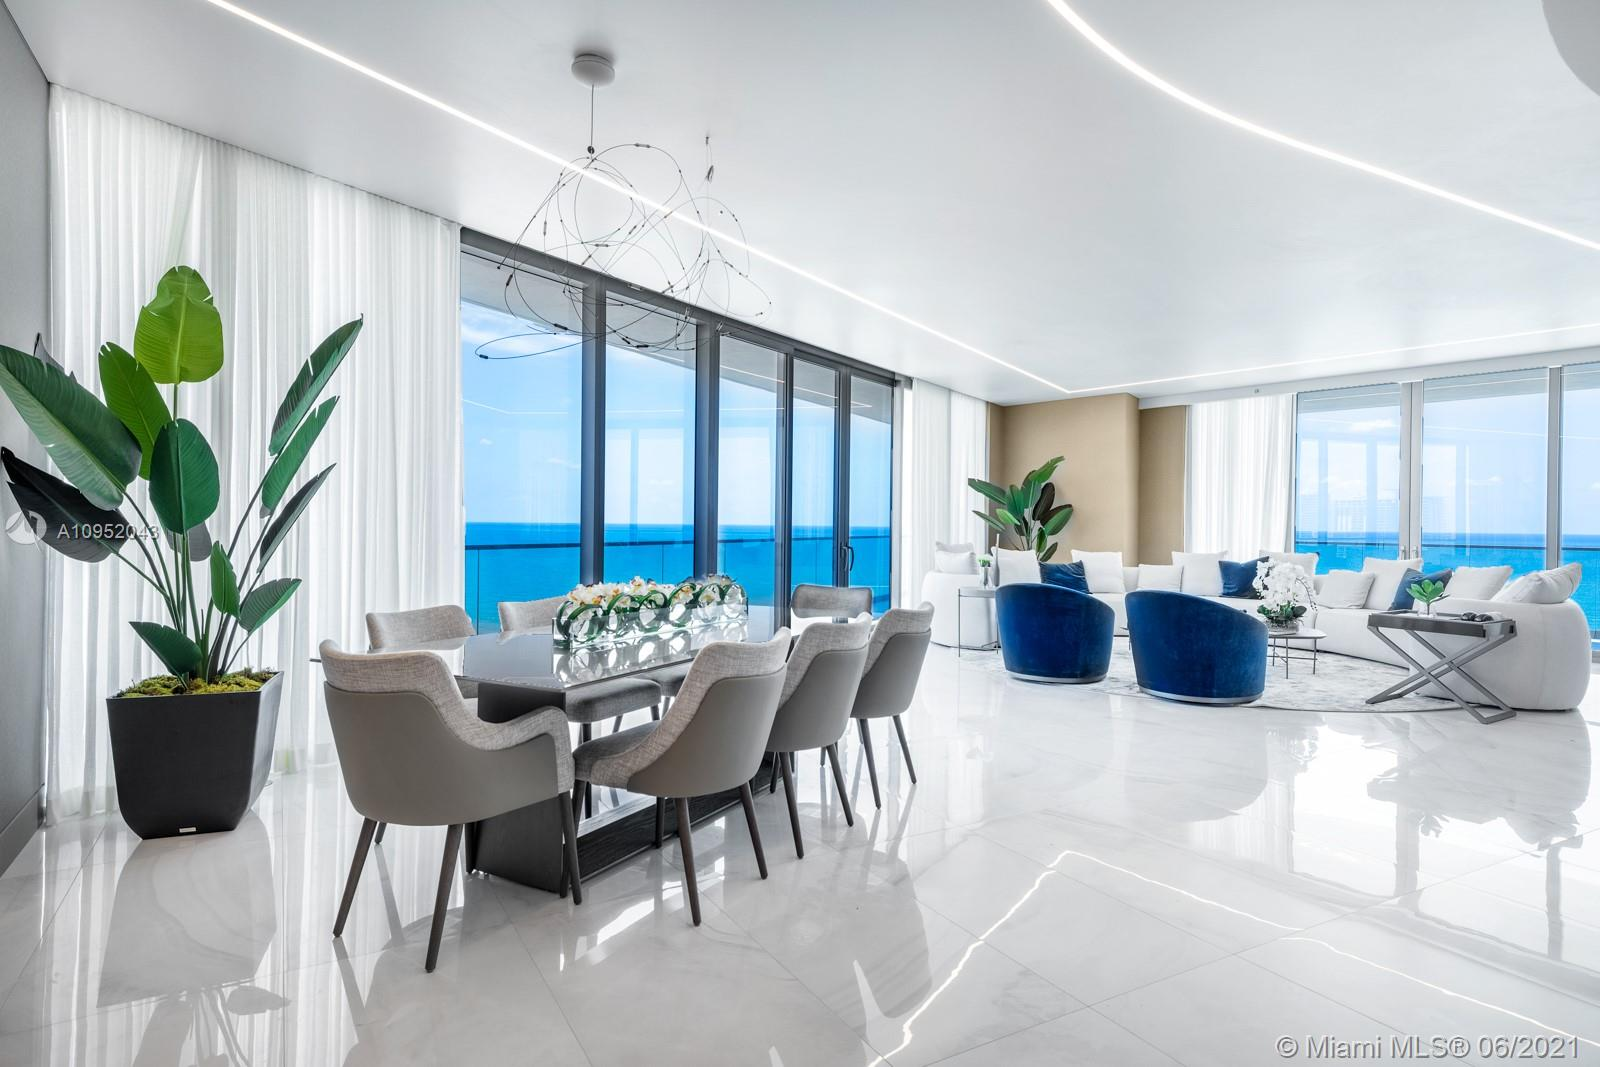 One of the most beautiful residences at the one and only Residences by Armani Casa in Sunny Isles Beach. This corner apartment is a brand new 4 bedroom, with 5.5 baths and laundry, featuring 3,748 sq. ft. plus 1400 sq. ft. in terraces, totaling 5,148 sq. ft. Showcases ocean and city views with two large terraces, floor to ceiling windows, split floor plan, volume ceilings, and summer kitchen on the balcony. Sophisticated elegance in the most sought after building in Sunny Isles. Full service building including Italian Restaurant with room service, party room, game room, 2 level spa, yoga/pilates room, gym, movie theatre, cigar and wine room, kids room, concierge, security, valet, and beach cabanas. This residence will be finished glamorously and can be sold furnished or unfurnished.